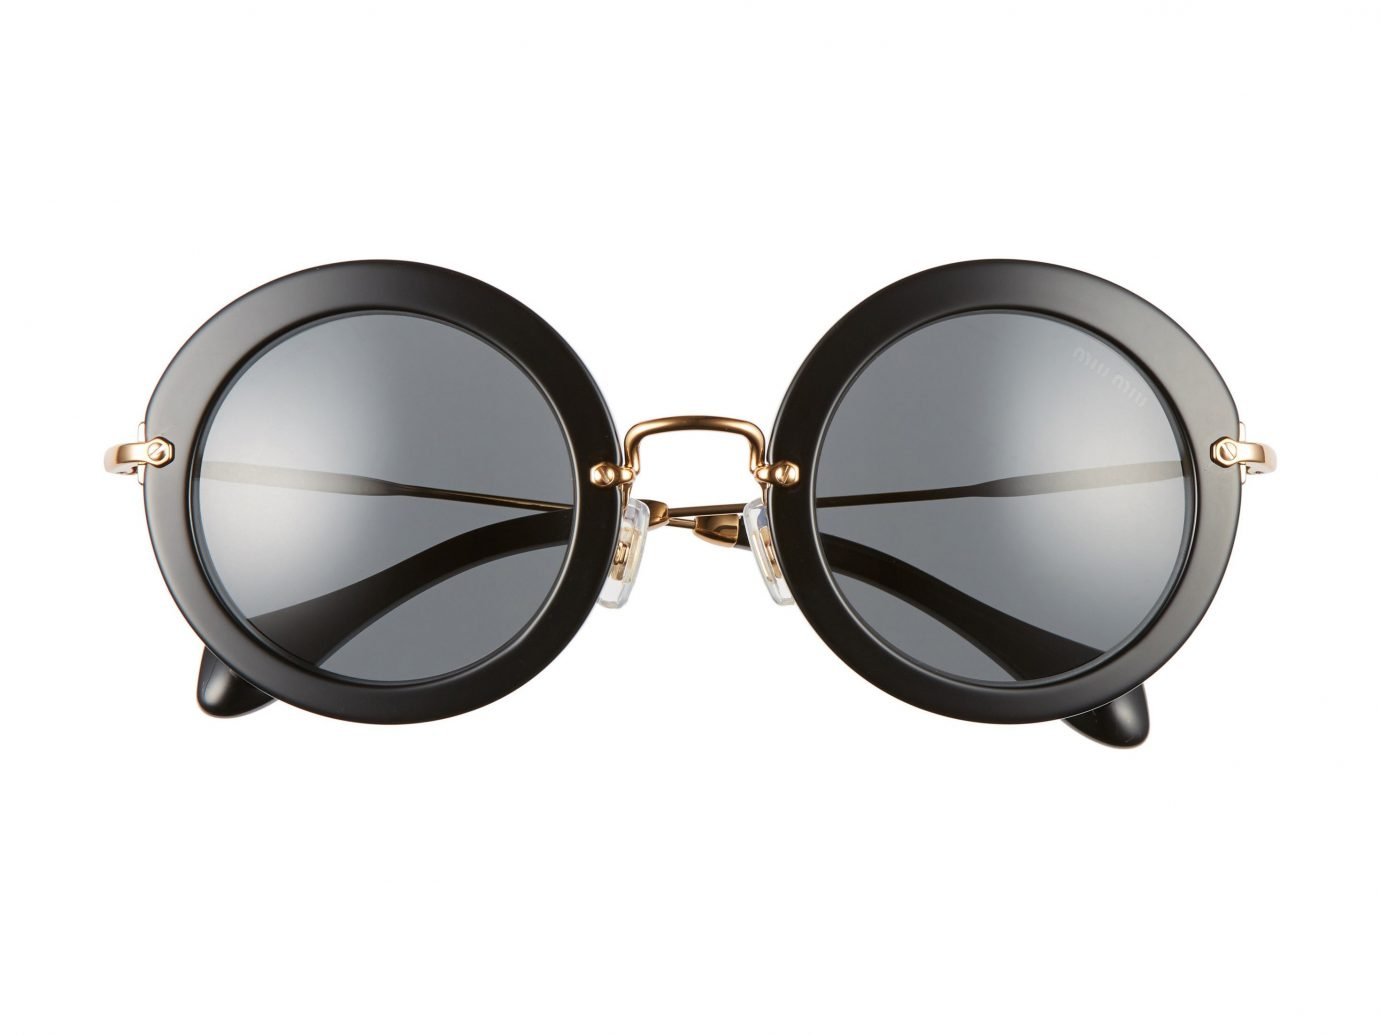 Style + Design eyewear sunglasses vision care glasses accessory product design product goggles spectacles font